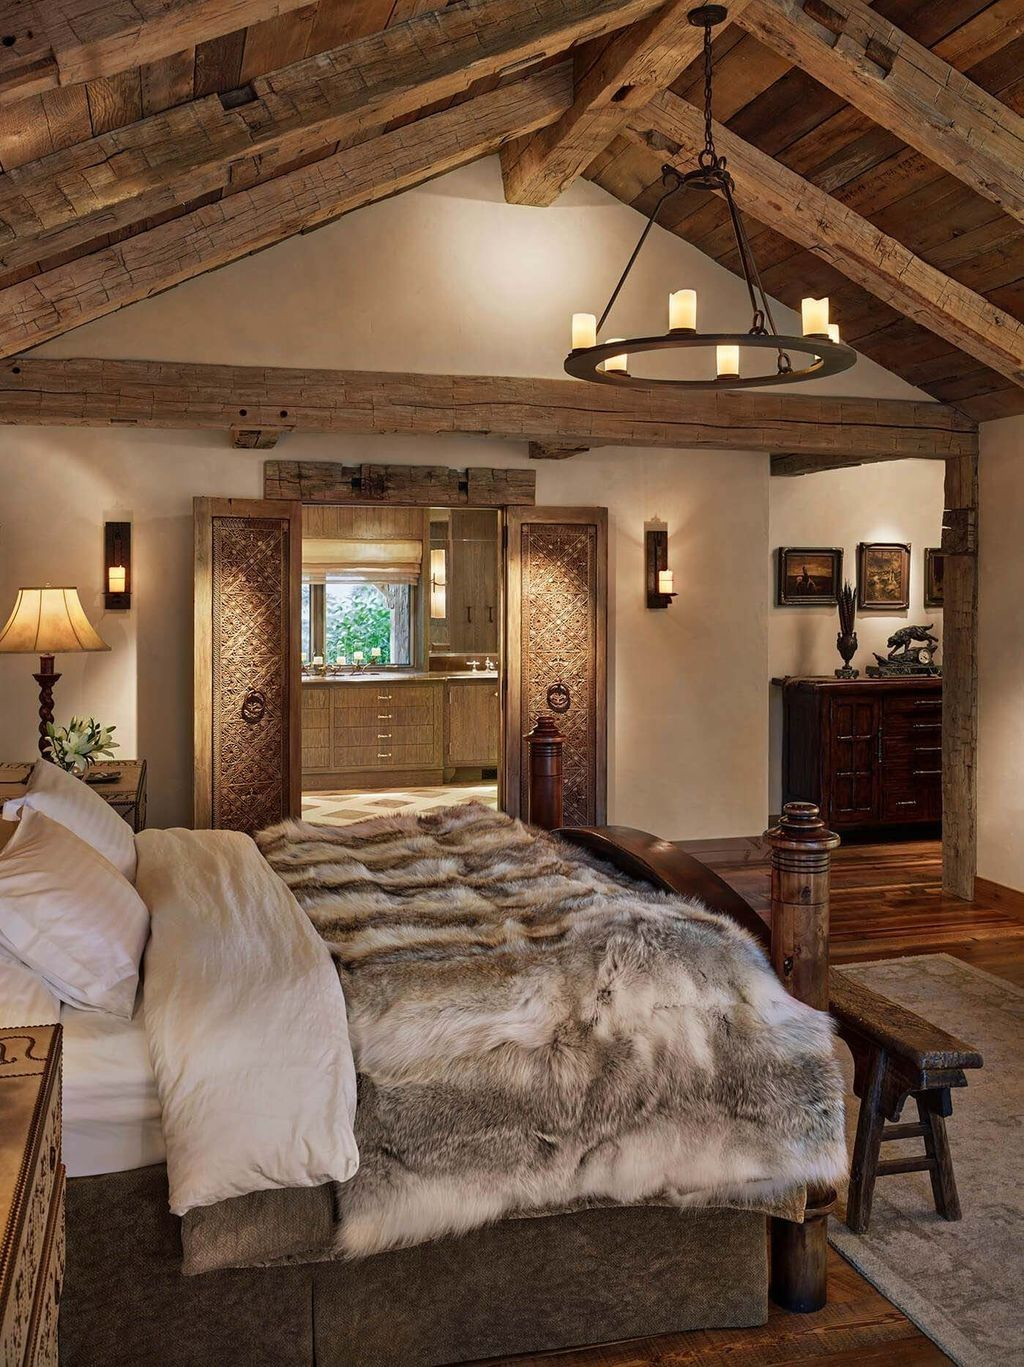 20+ Modern Rustic Master Bedroom Design Ideas